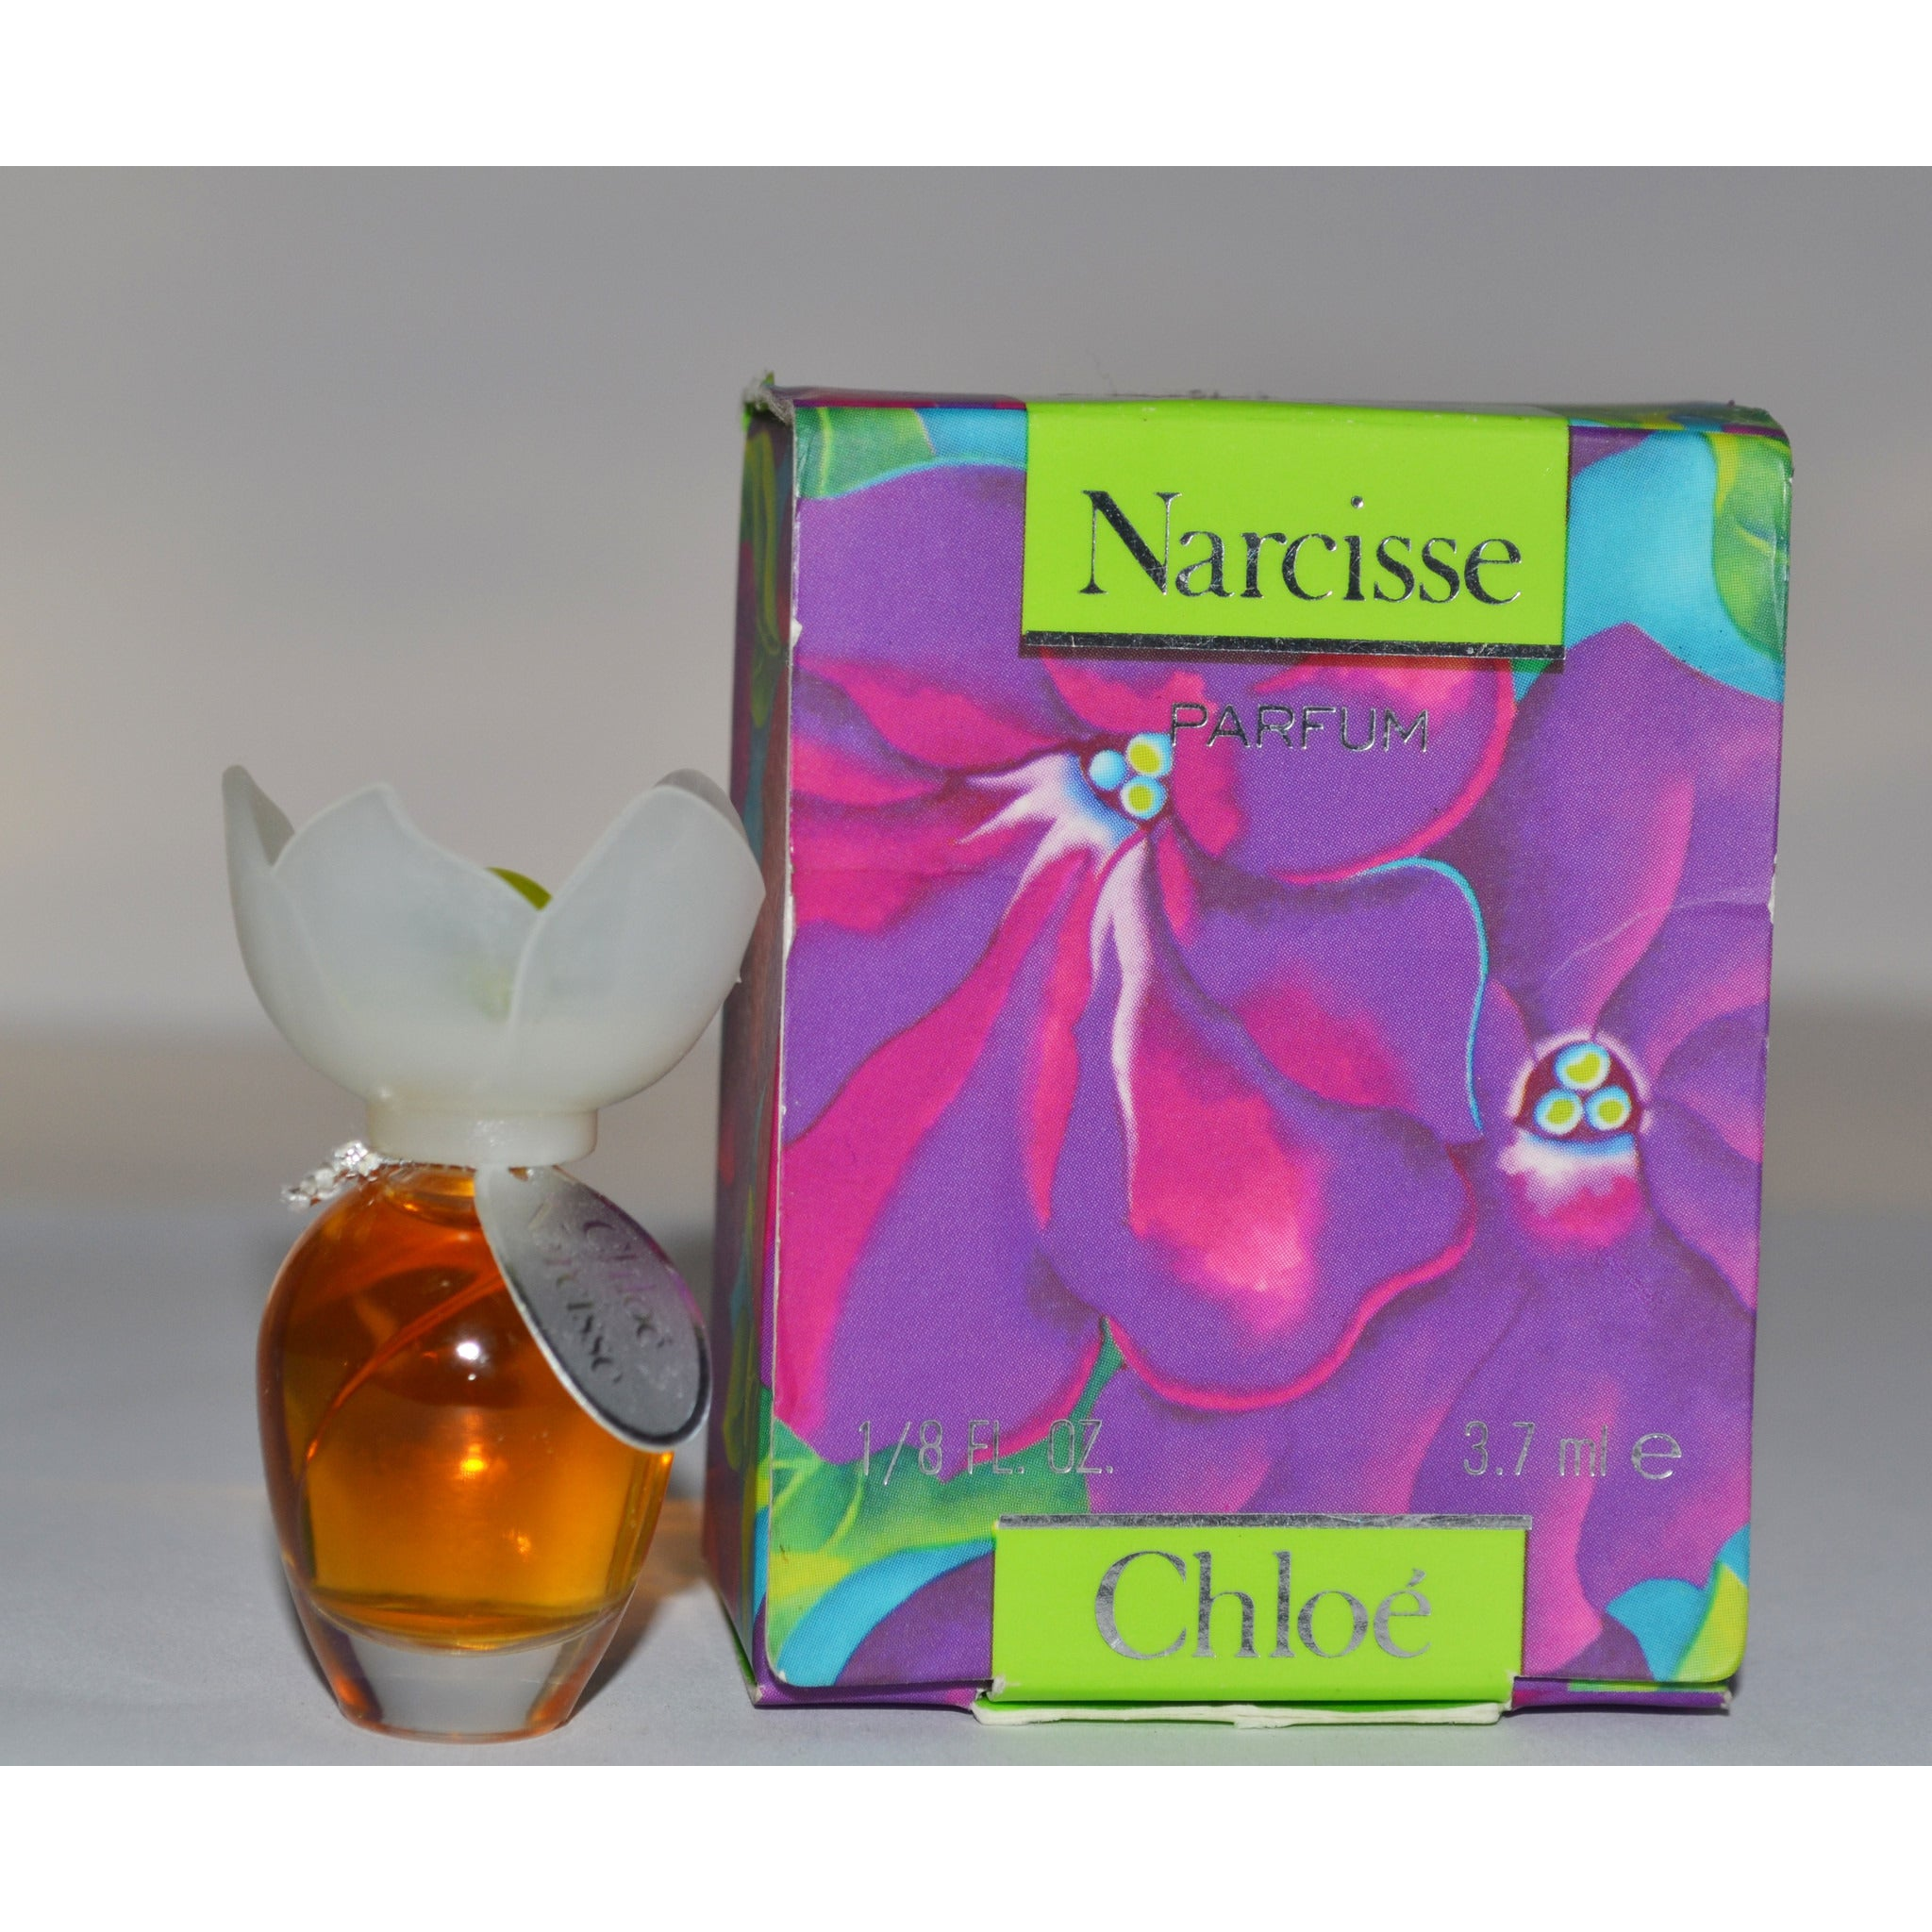 Narcisse Parfum Mini By Chloe